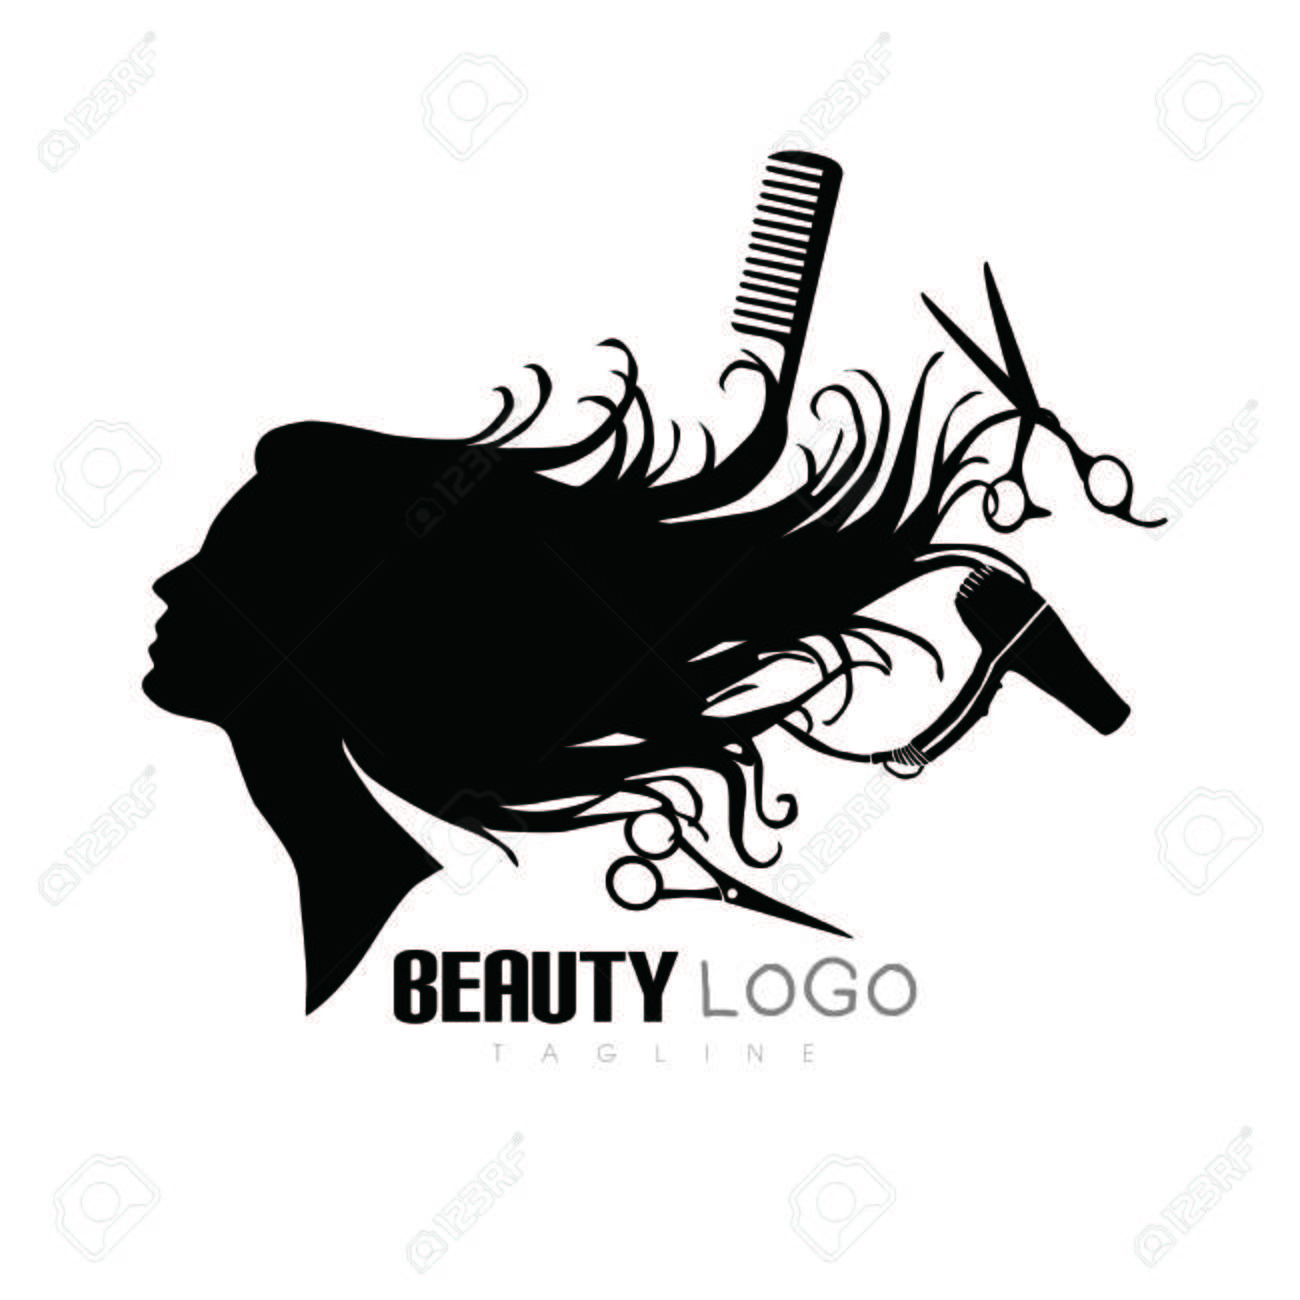 Stock Vector Hair Salon Logos Hair And Beauty Salon Salon Logo